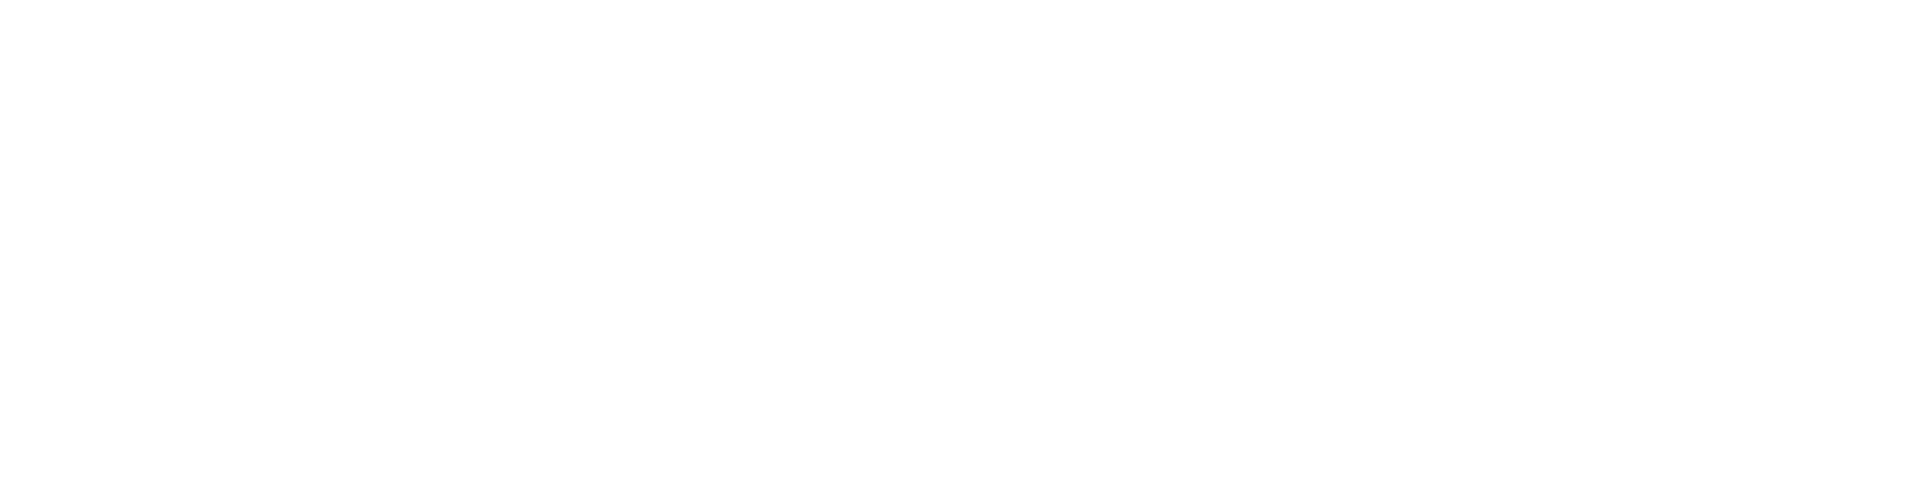 UCLH - 63% of people report that digital signage catches their attention